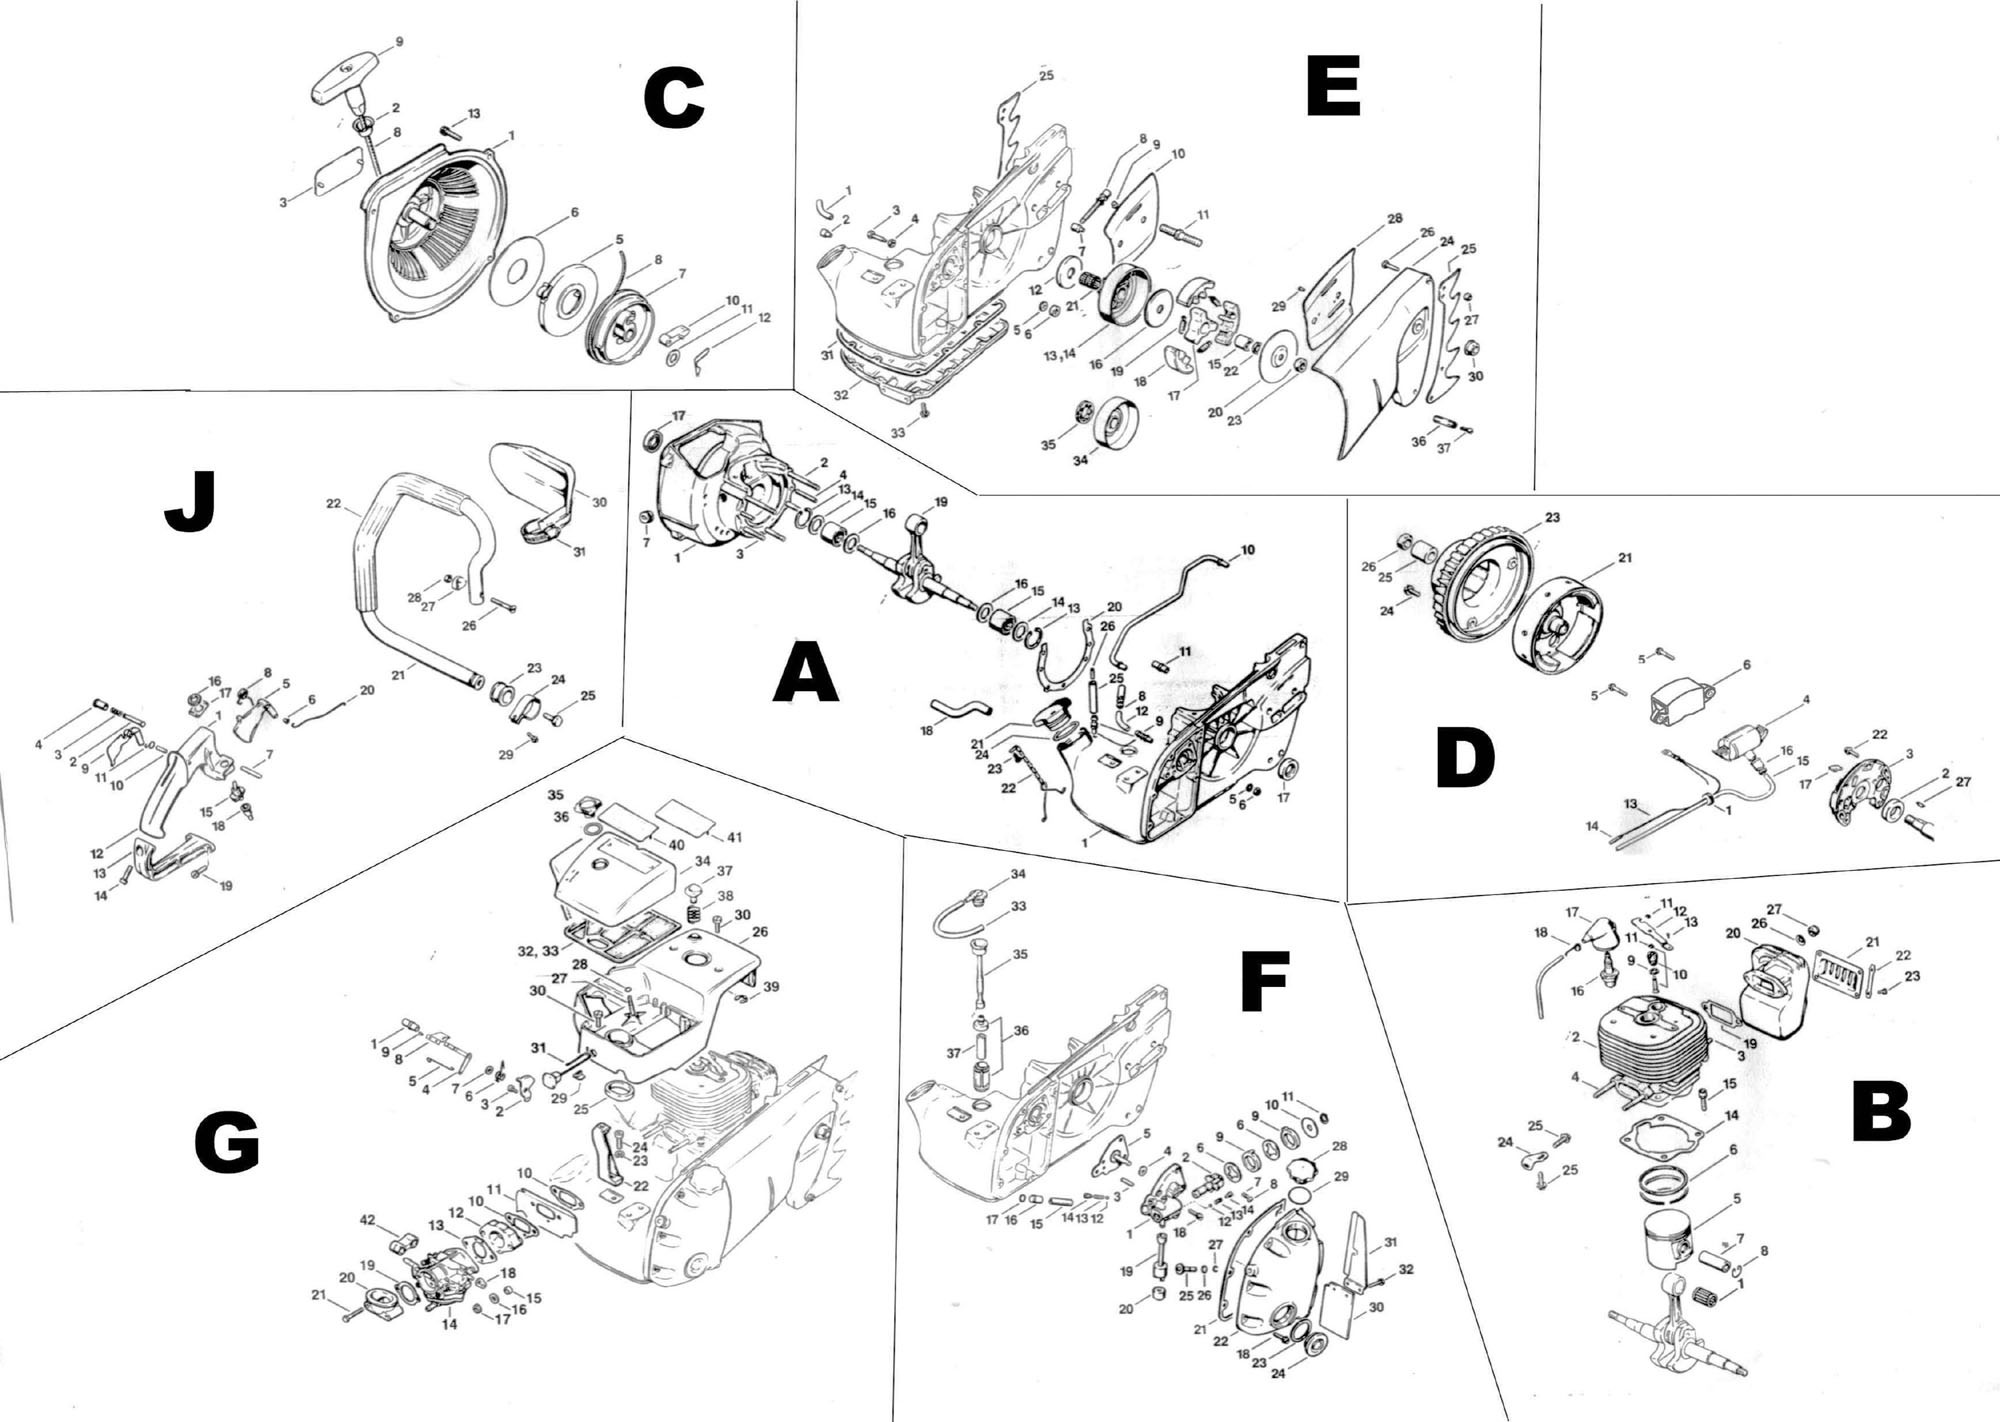 stihl ms 441 parts diagram 2002 vw beetle alternator wiring 270 engine diagrams replacement chain